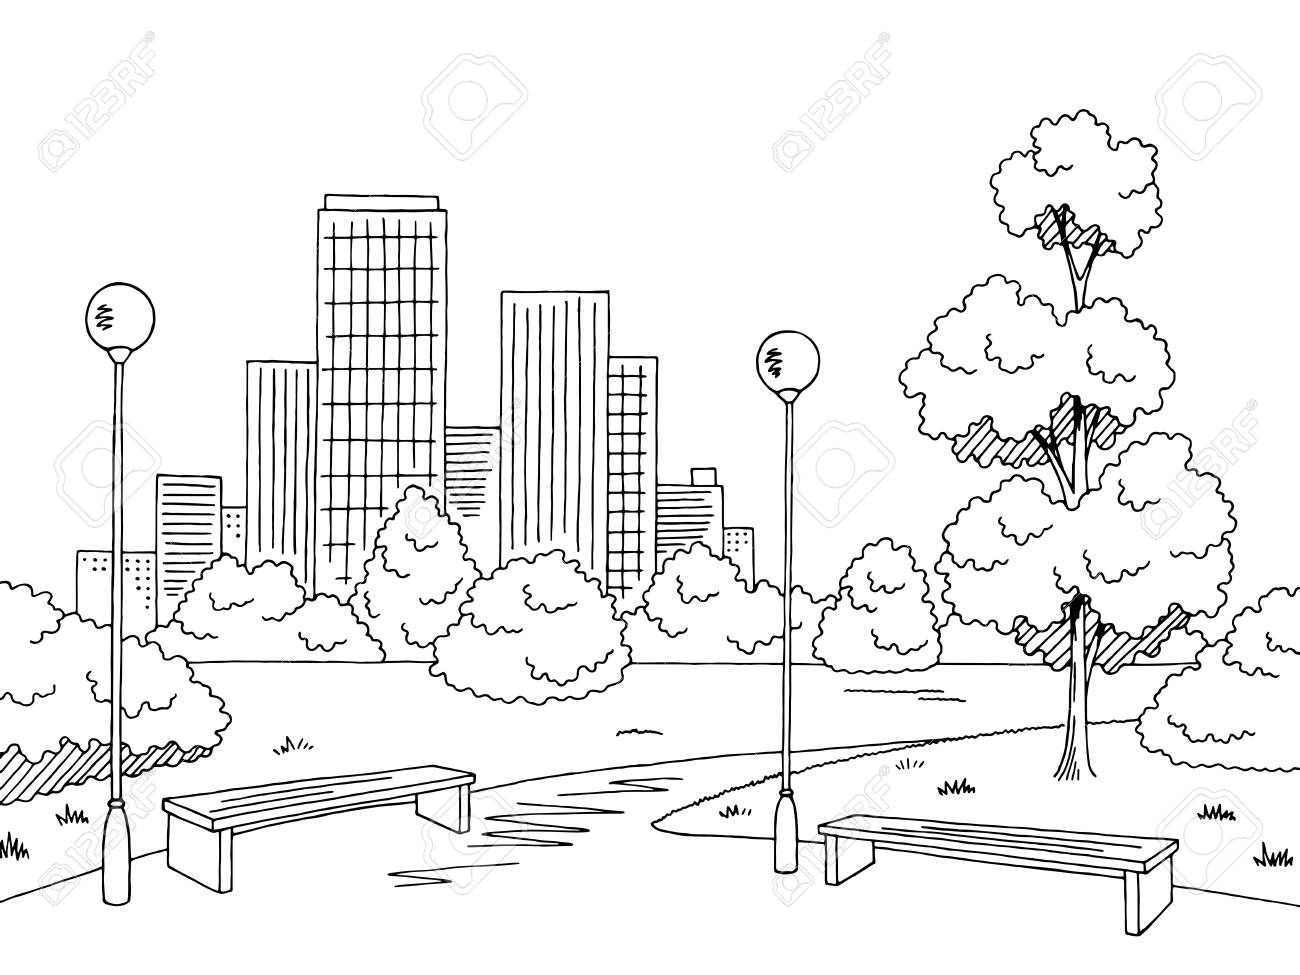 Park clipart black and white banner freeuse stock Park black and white clipart 6 » Clipart Station banner freeuse stock